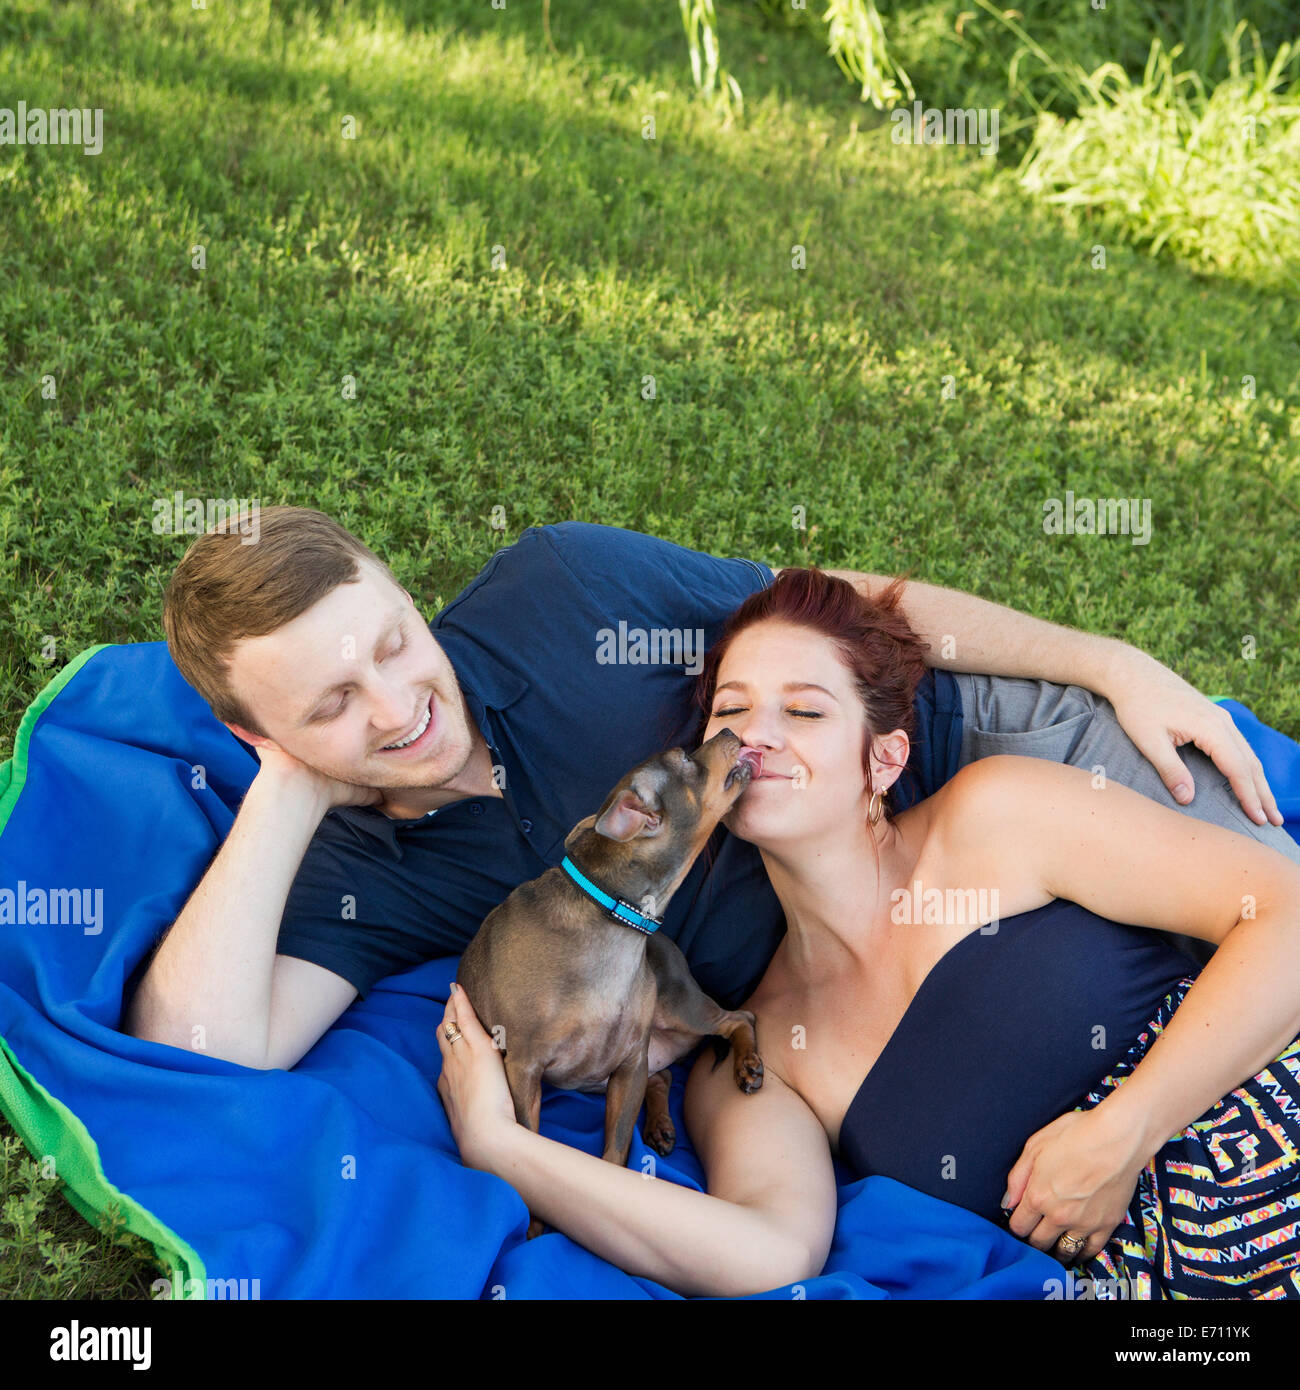 A couple sitting on a picnic rug. A small dog licking the face of a woman. - Stock Image